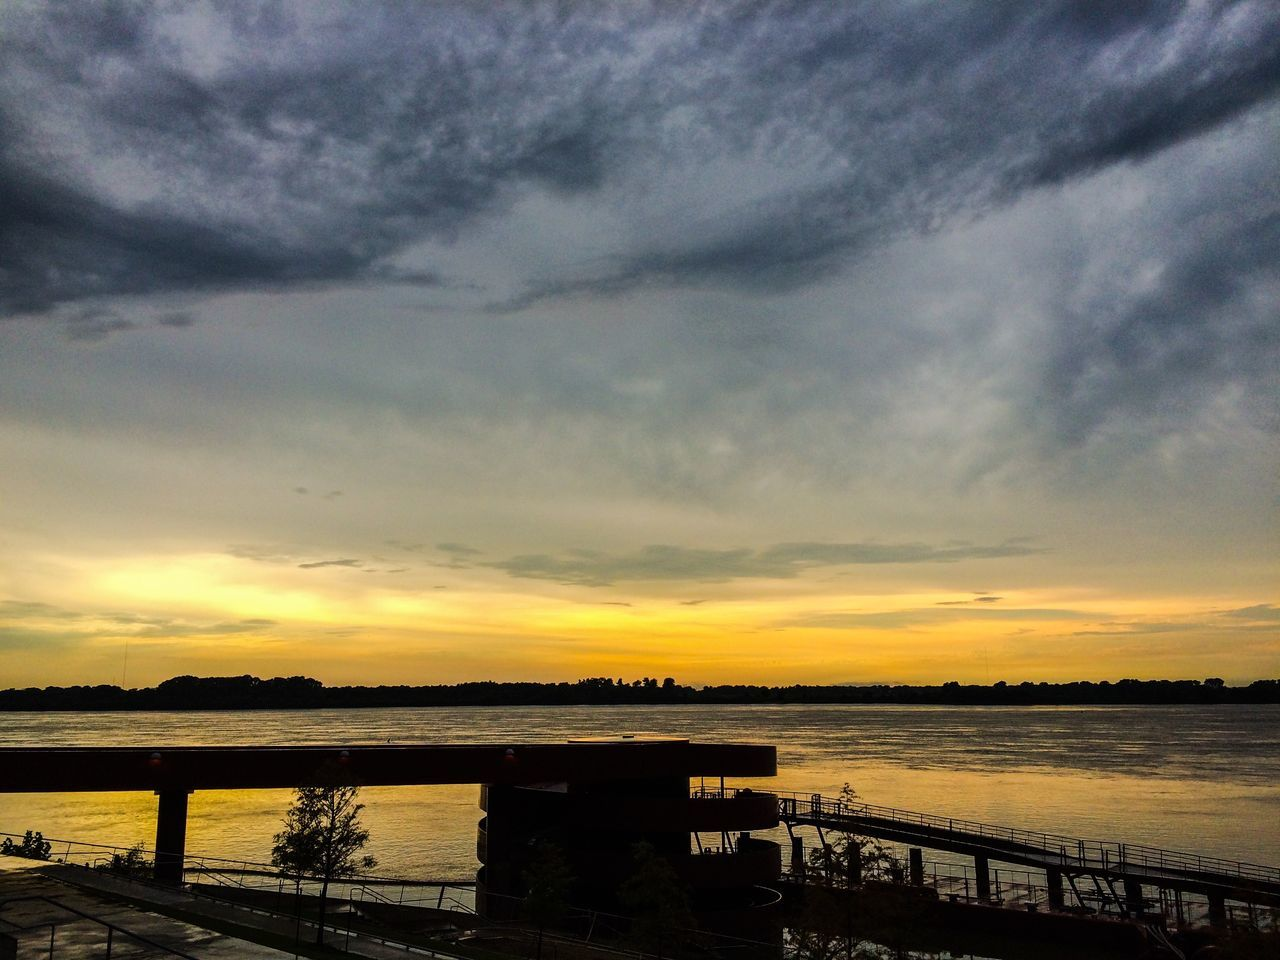 sunset, sky, water, cloud - sky, built structure, bridge - man made structure, silhouette, river, scenics, outdoors, architecture, no people, nature, tranquility, beauty in nature, tree, day